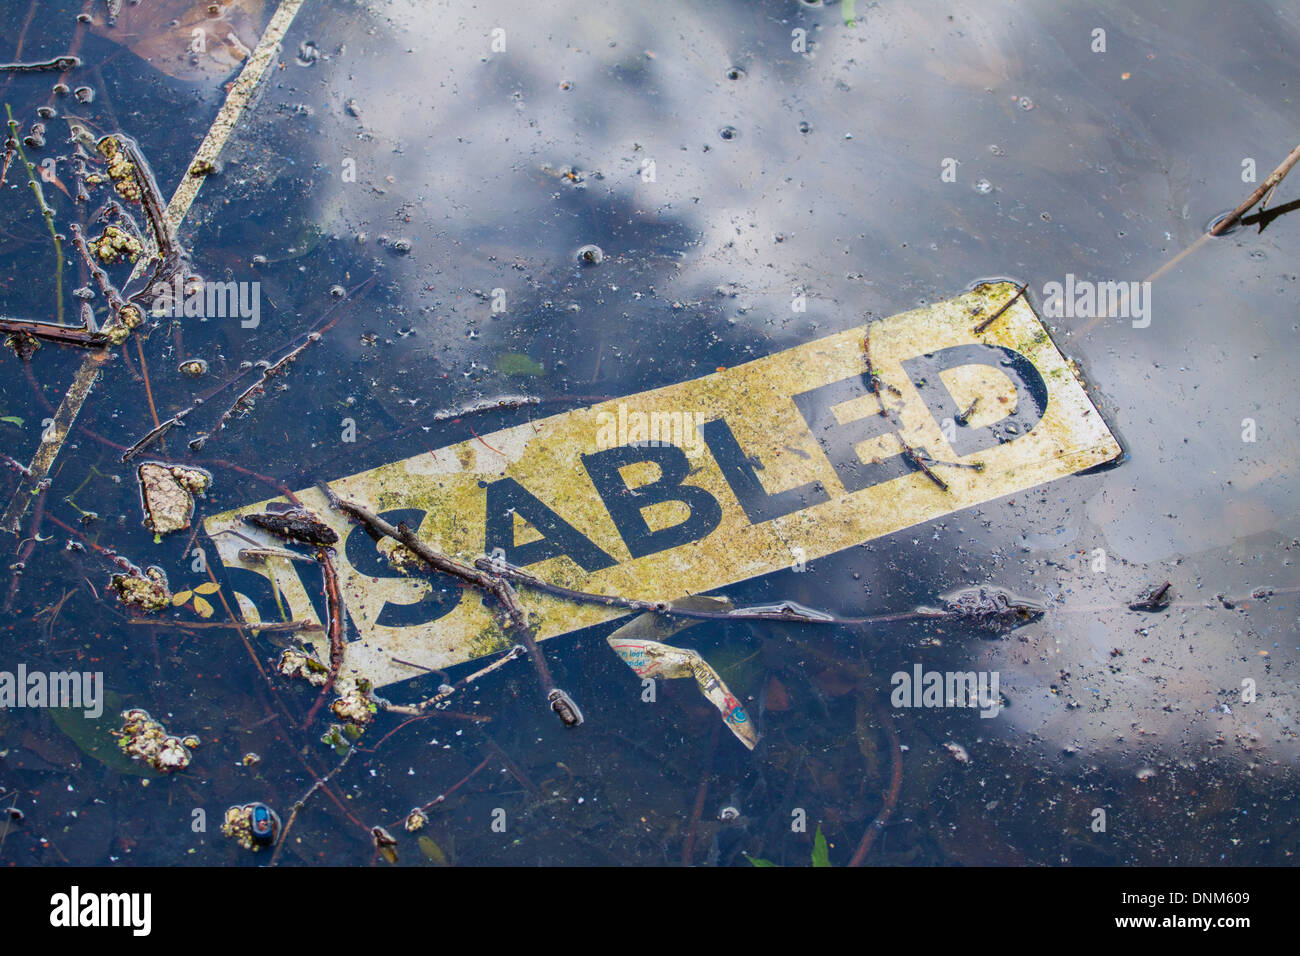 Disabled sign thrown away into pond - Stock Image